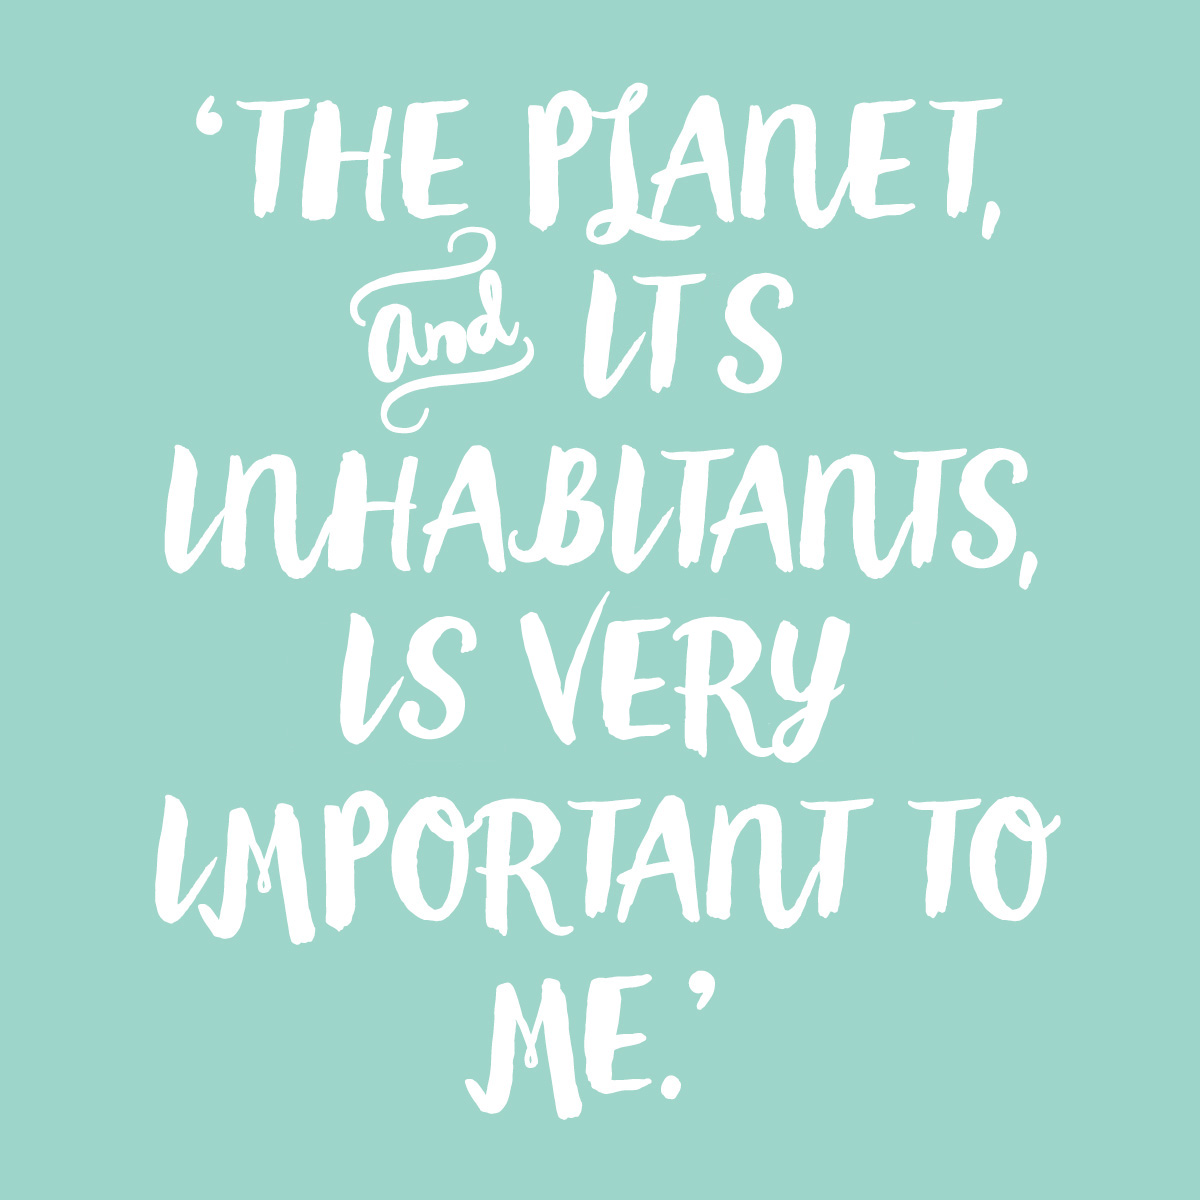 The planet is important to me